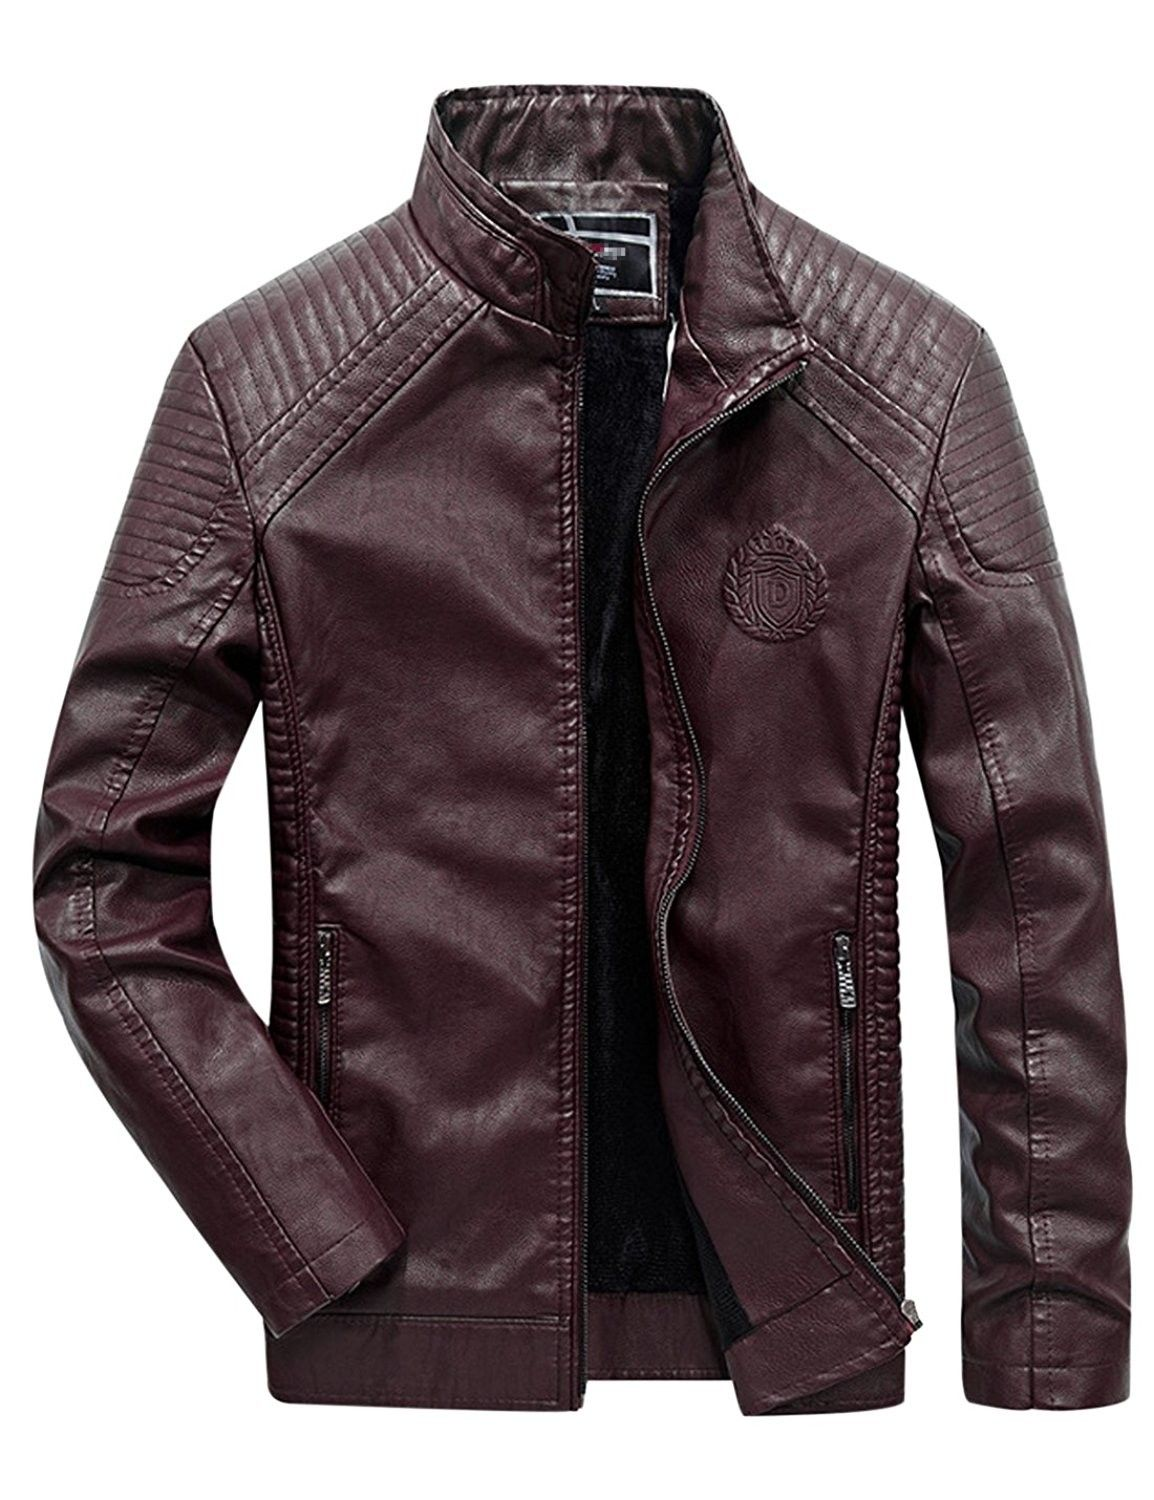 Men's Fur Lined Faux Leather Jacket Outerwear Red